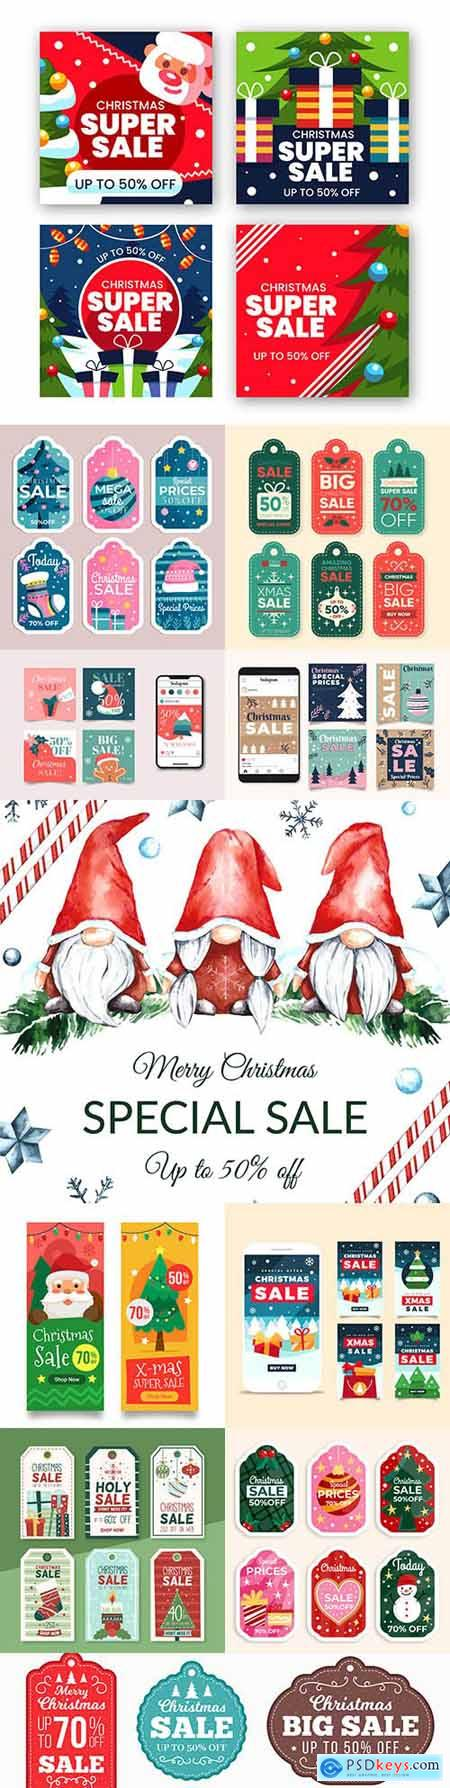 Christmas sale on instagram painted banners in flat design